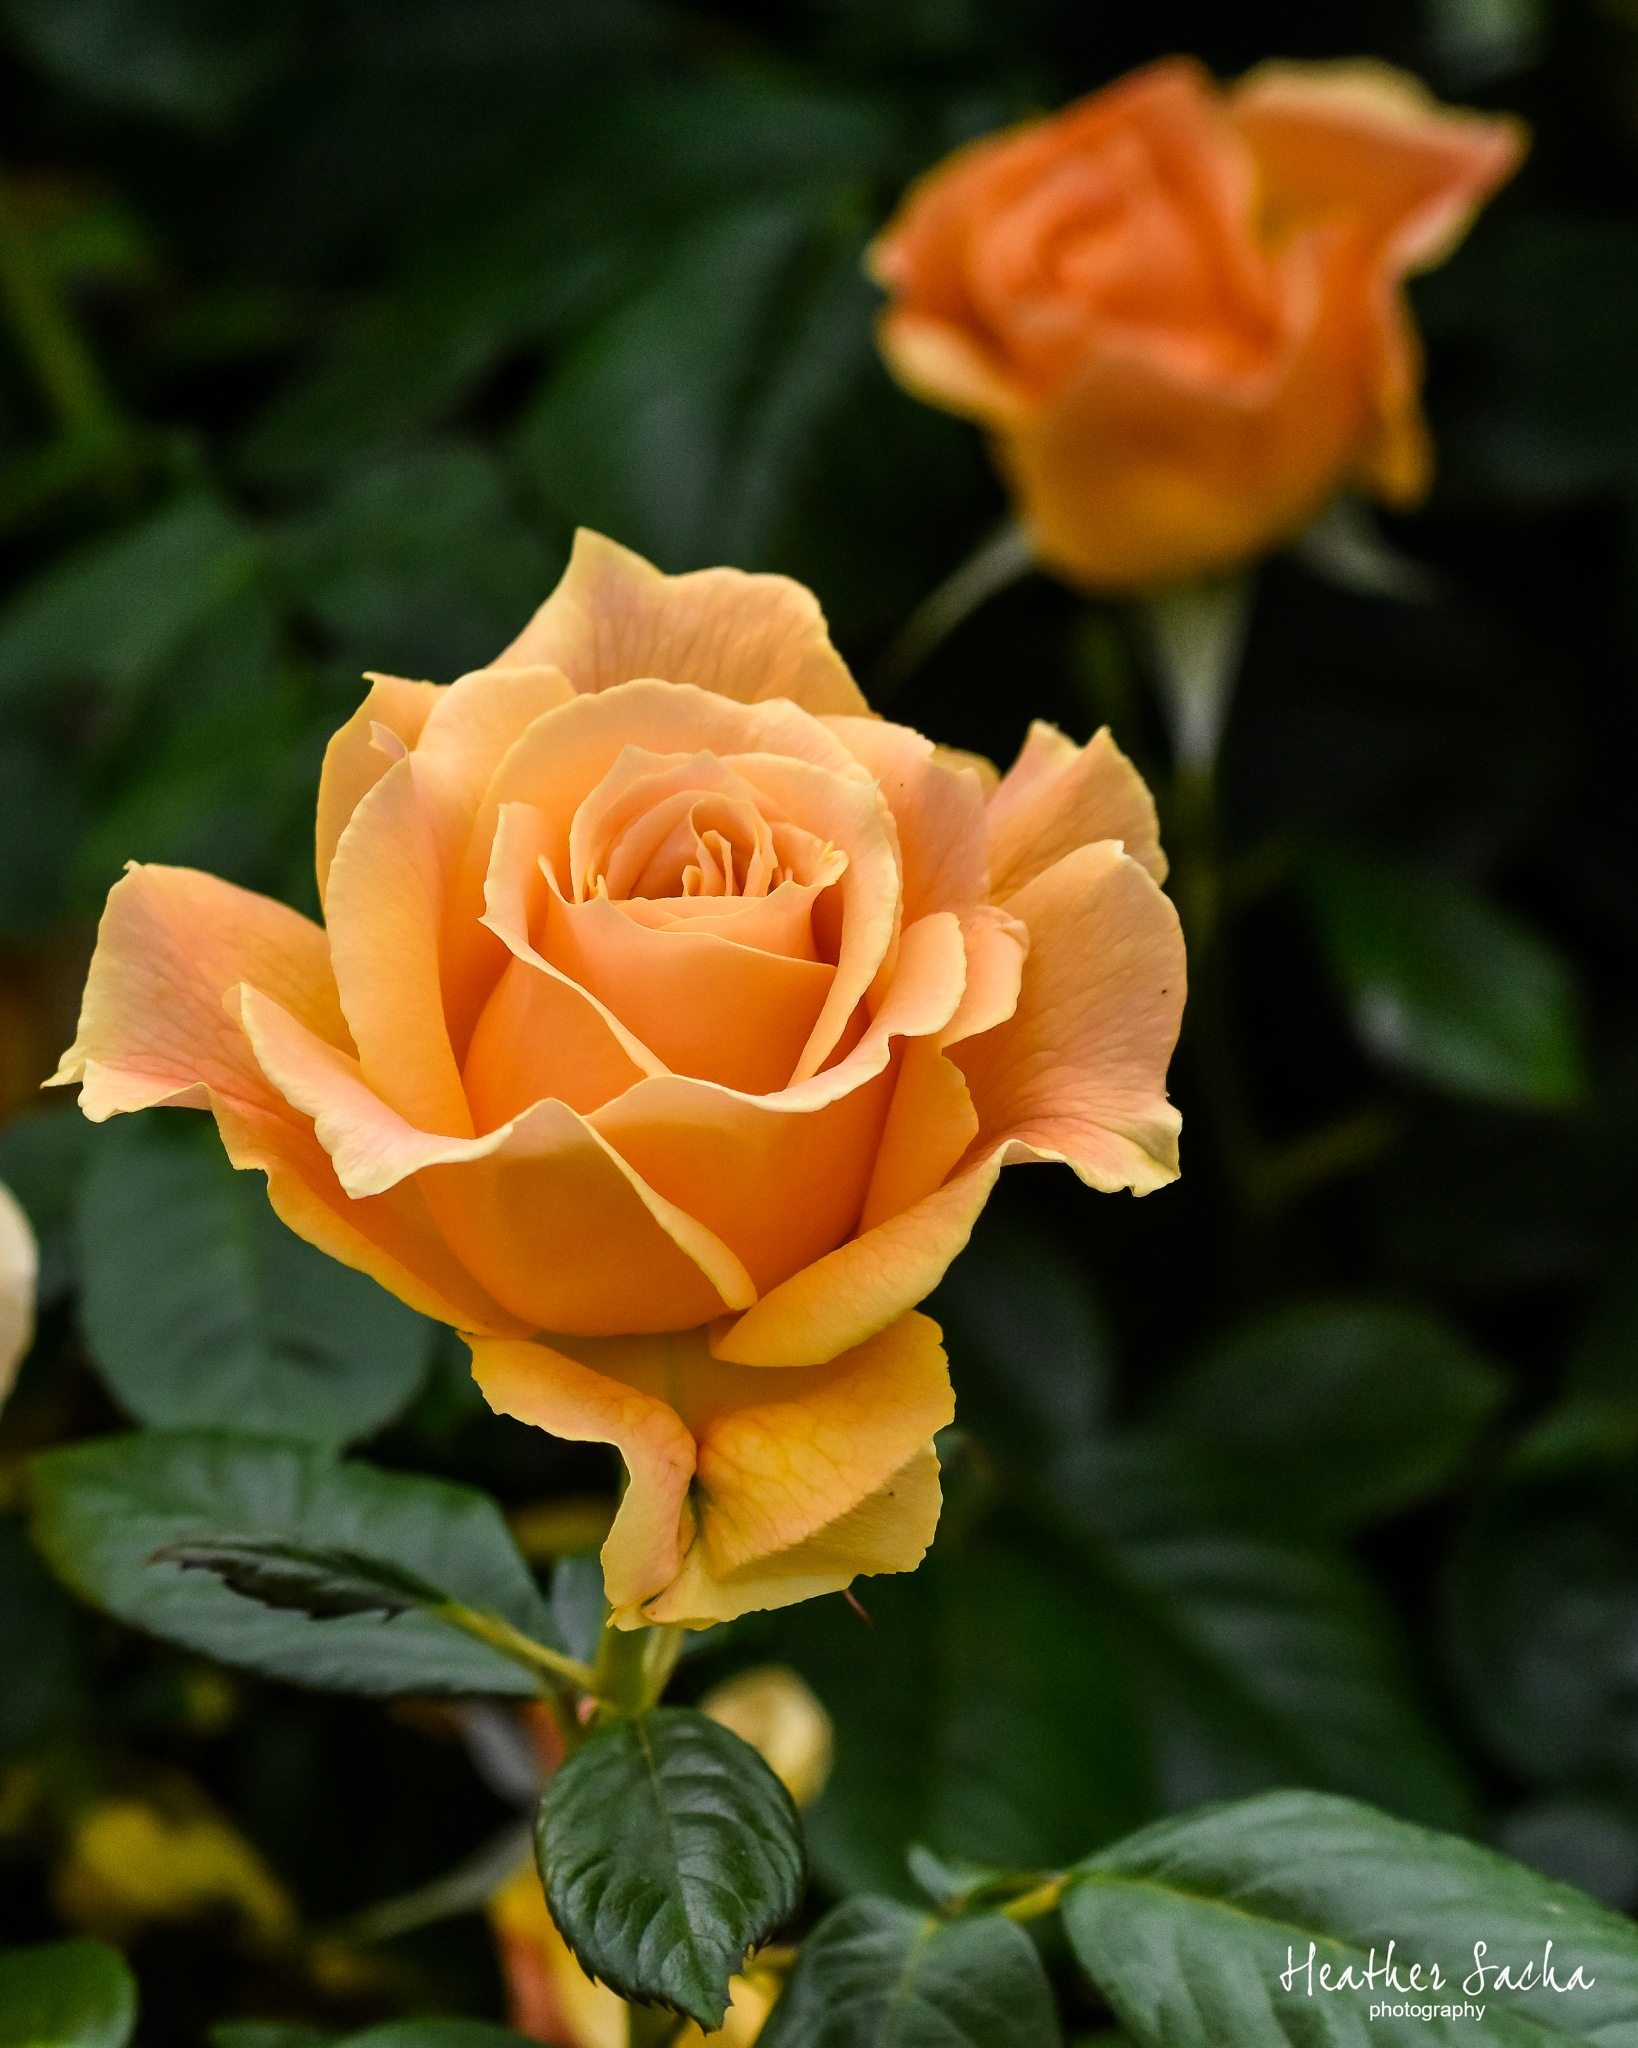 Yellow roses by heather.sacha